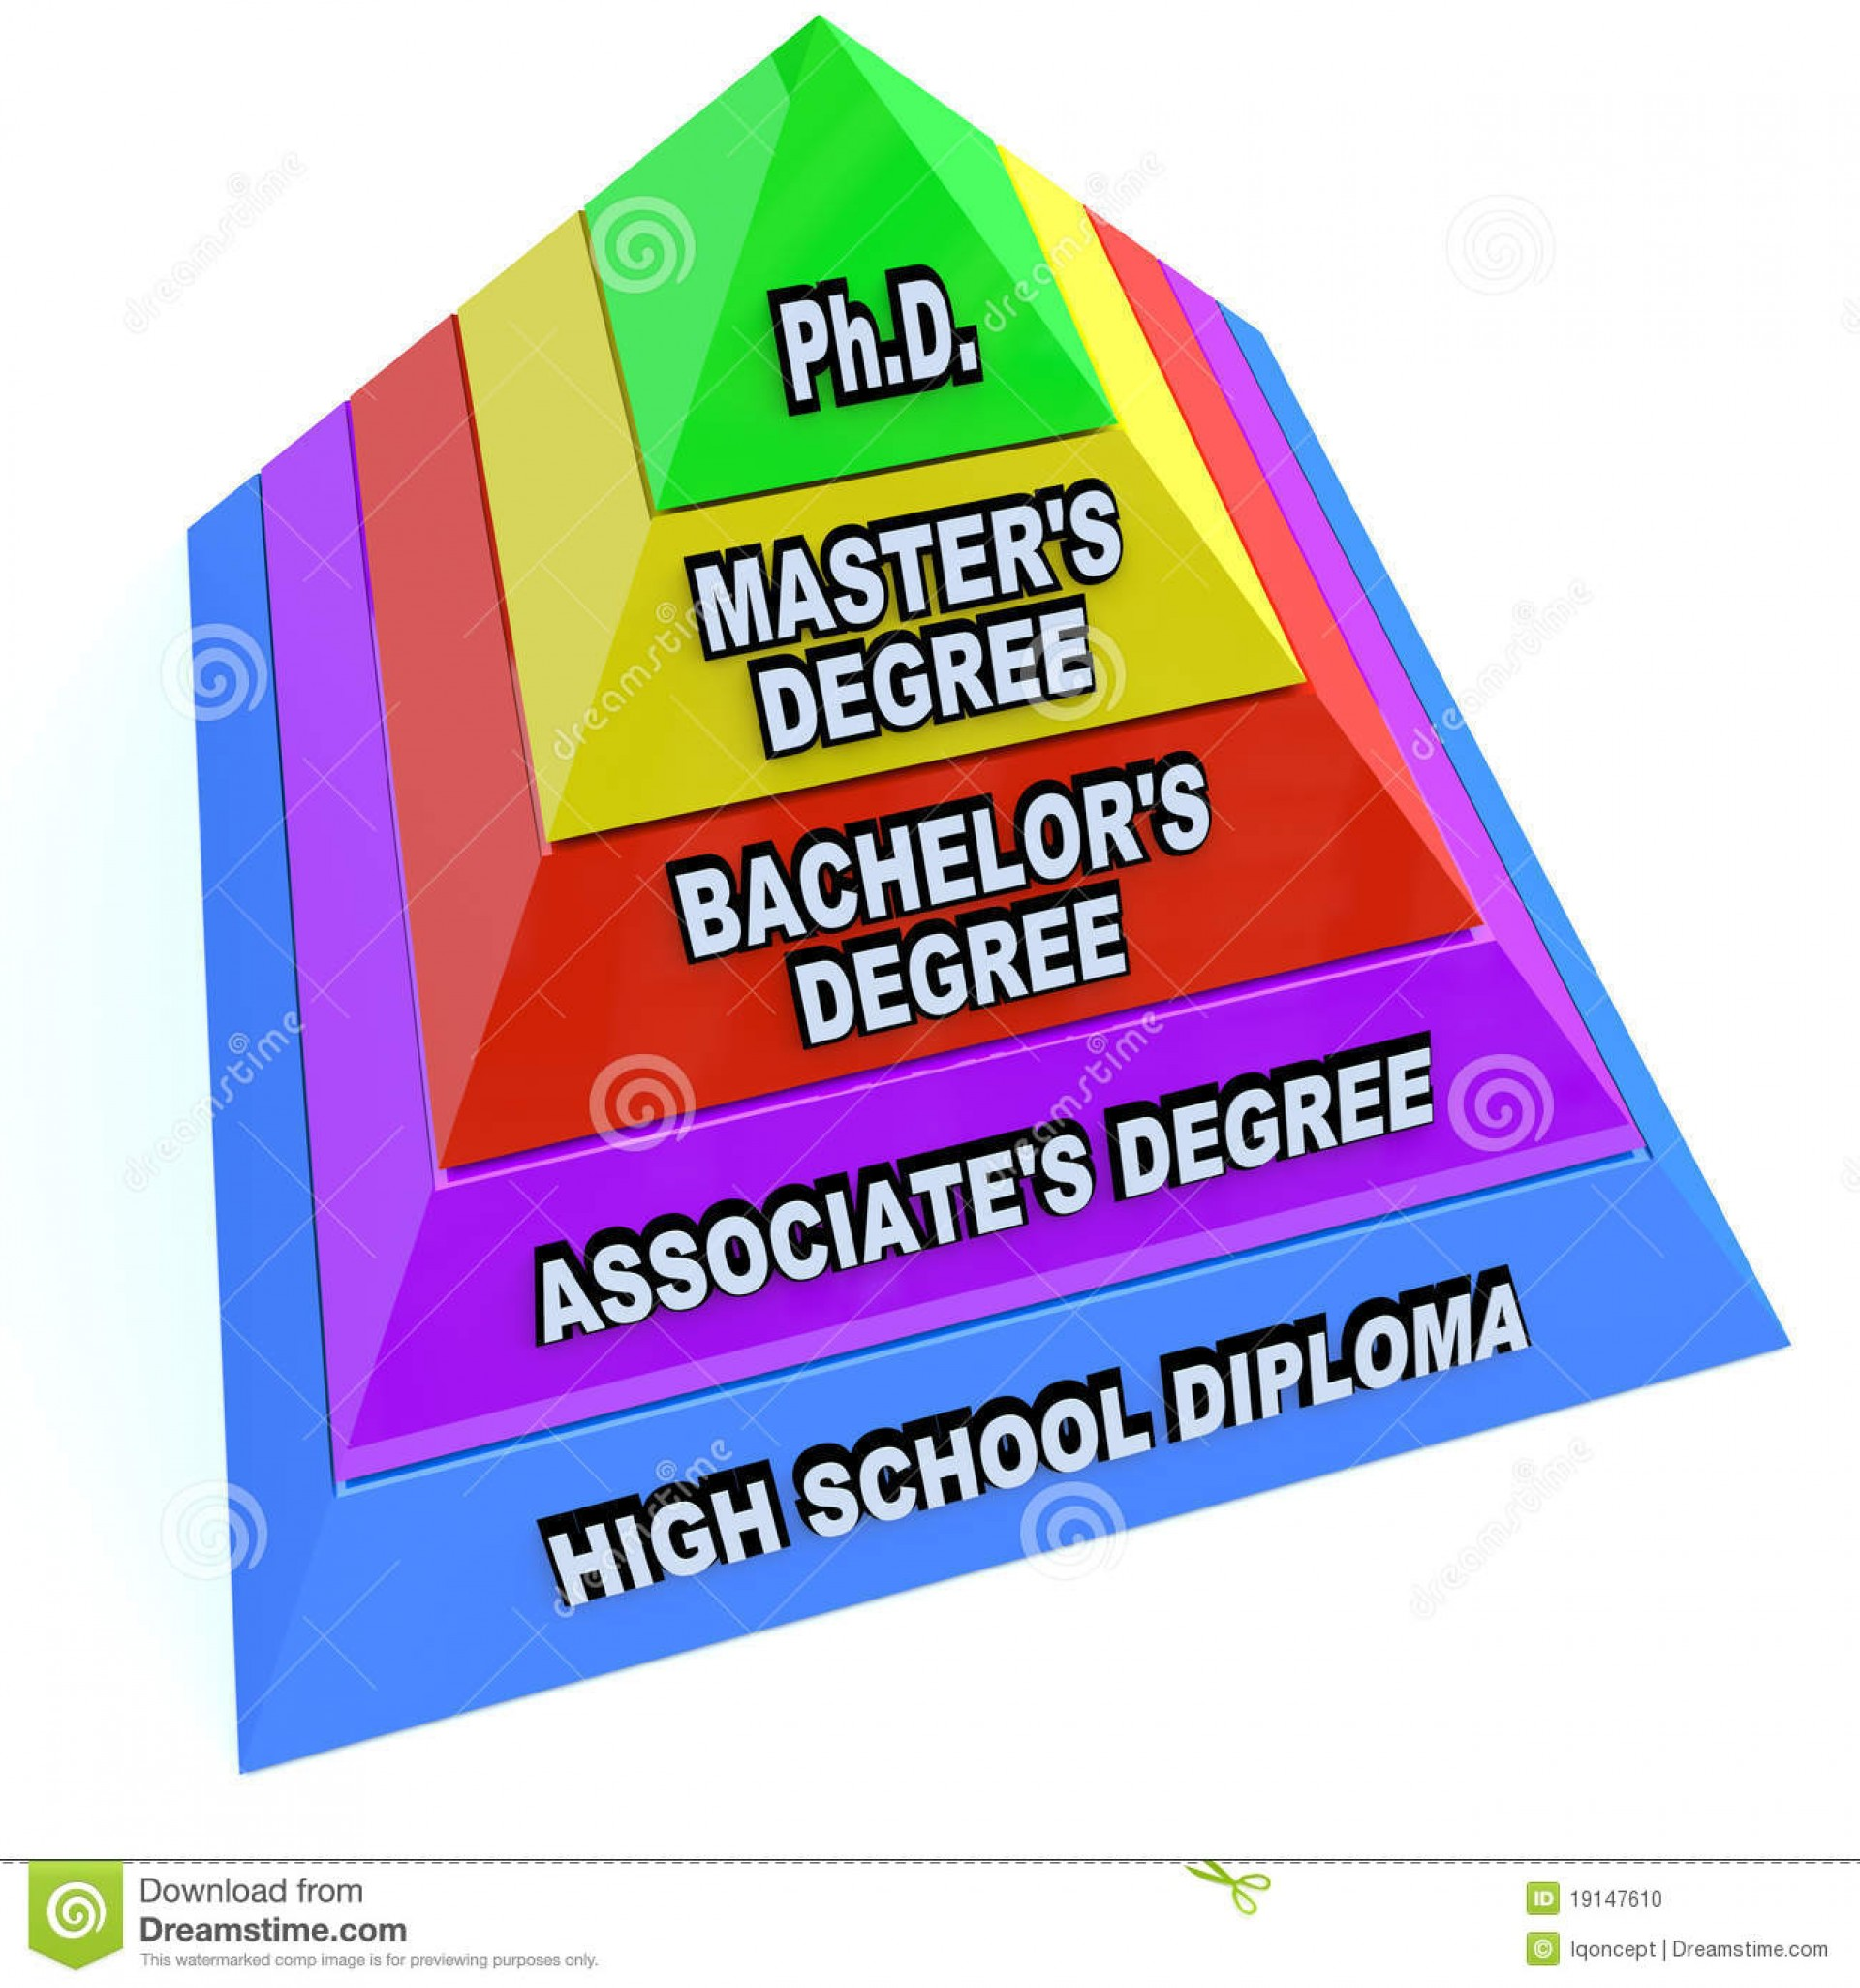 009 123helpme Free Essay Number Invite Code Higher Learning Education Degrees Pyramid Unique To Find Your And Enter It Below 1920